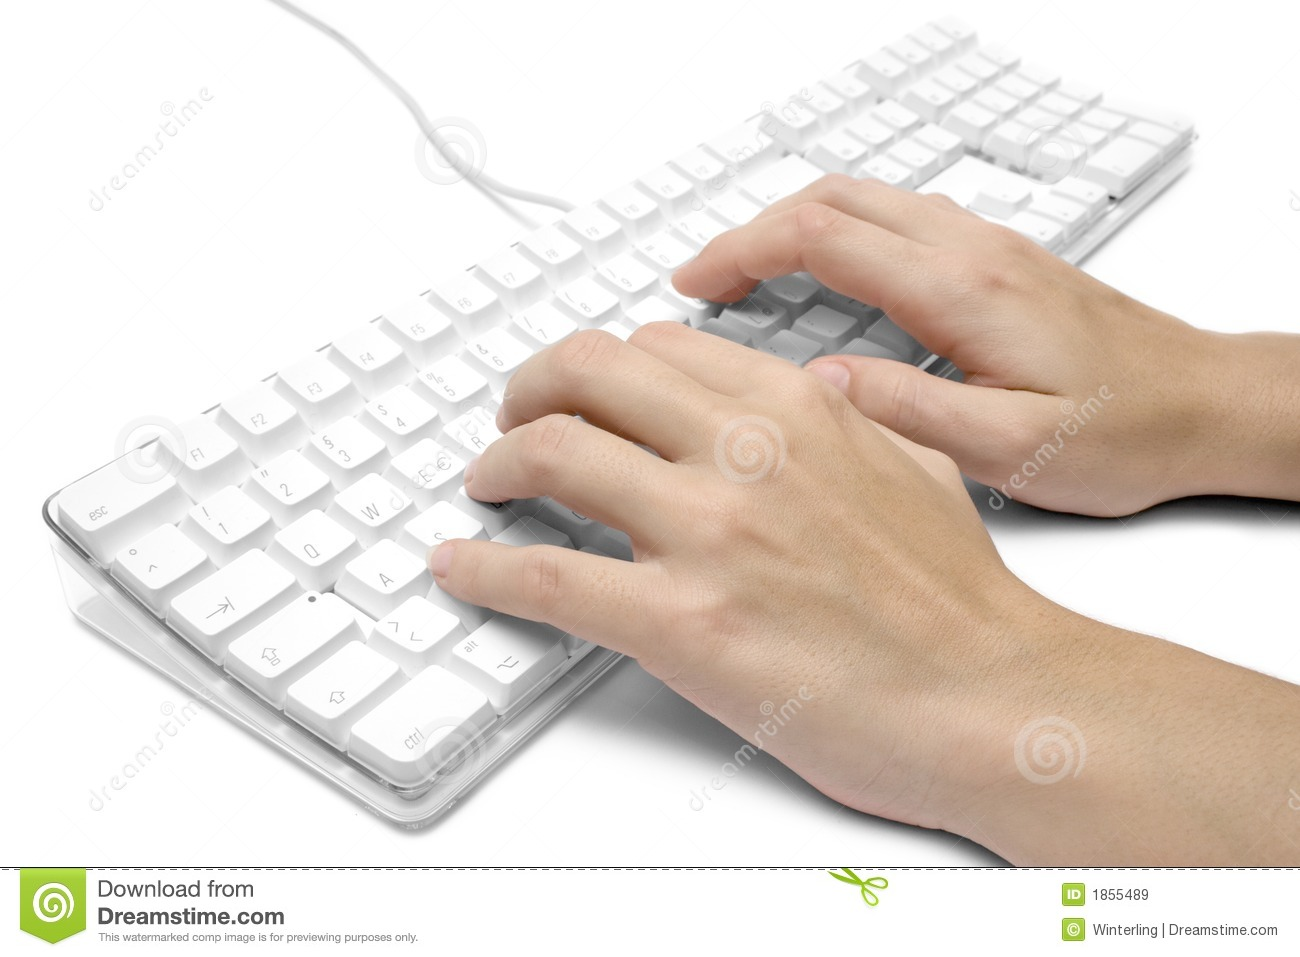 Handwriting Keyboard For Pc : writing on a white computer keyboard stock image image of hands fingers 1855489 ~ Russianpoet.info Haus und Dekorationen